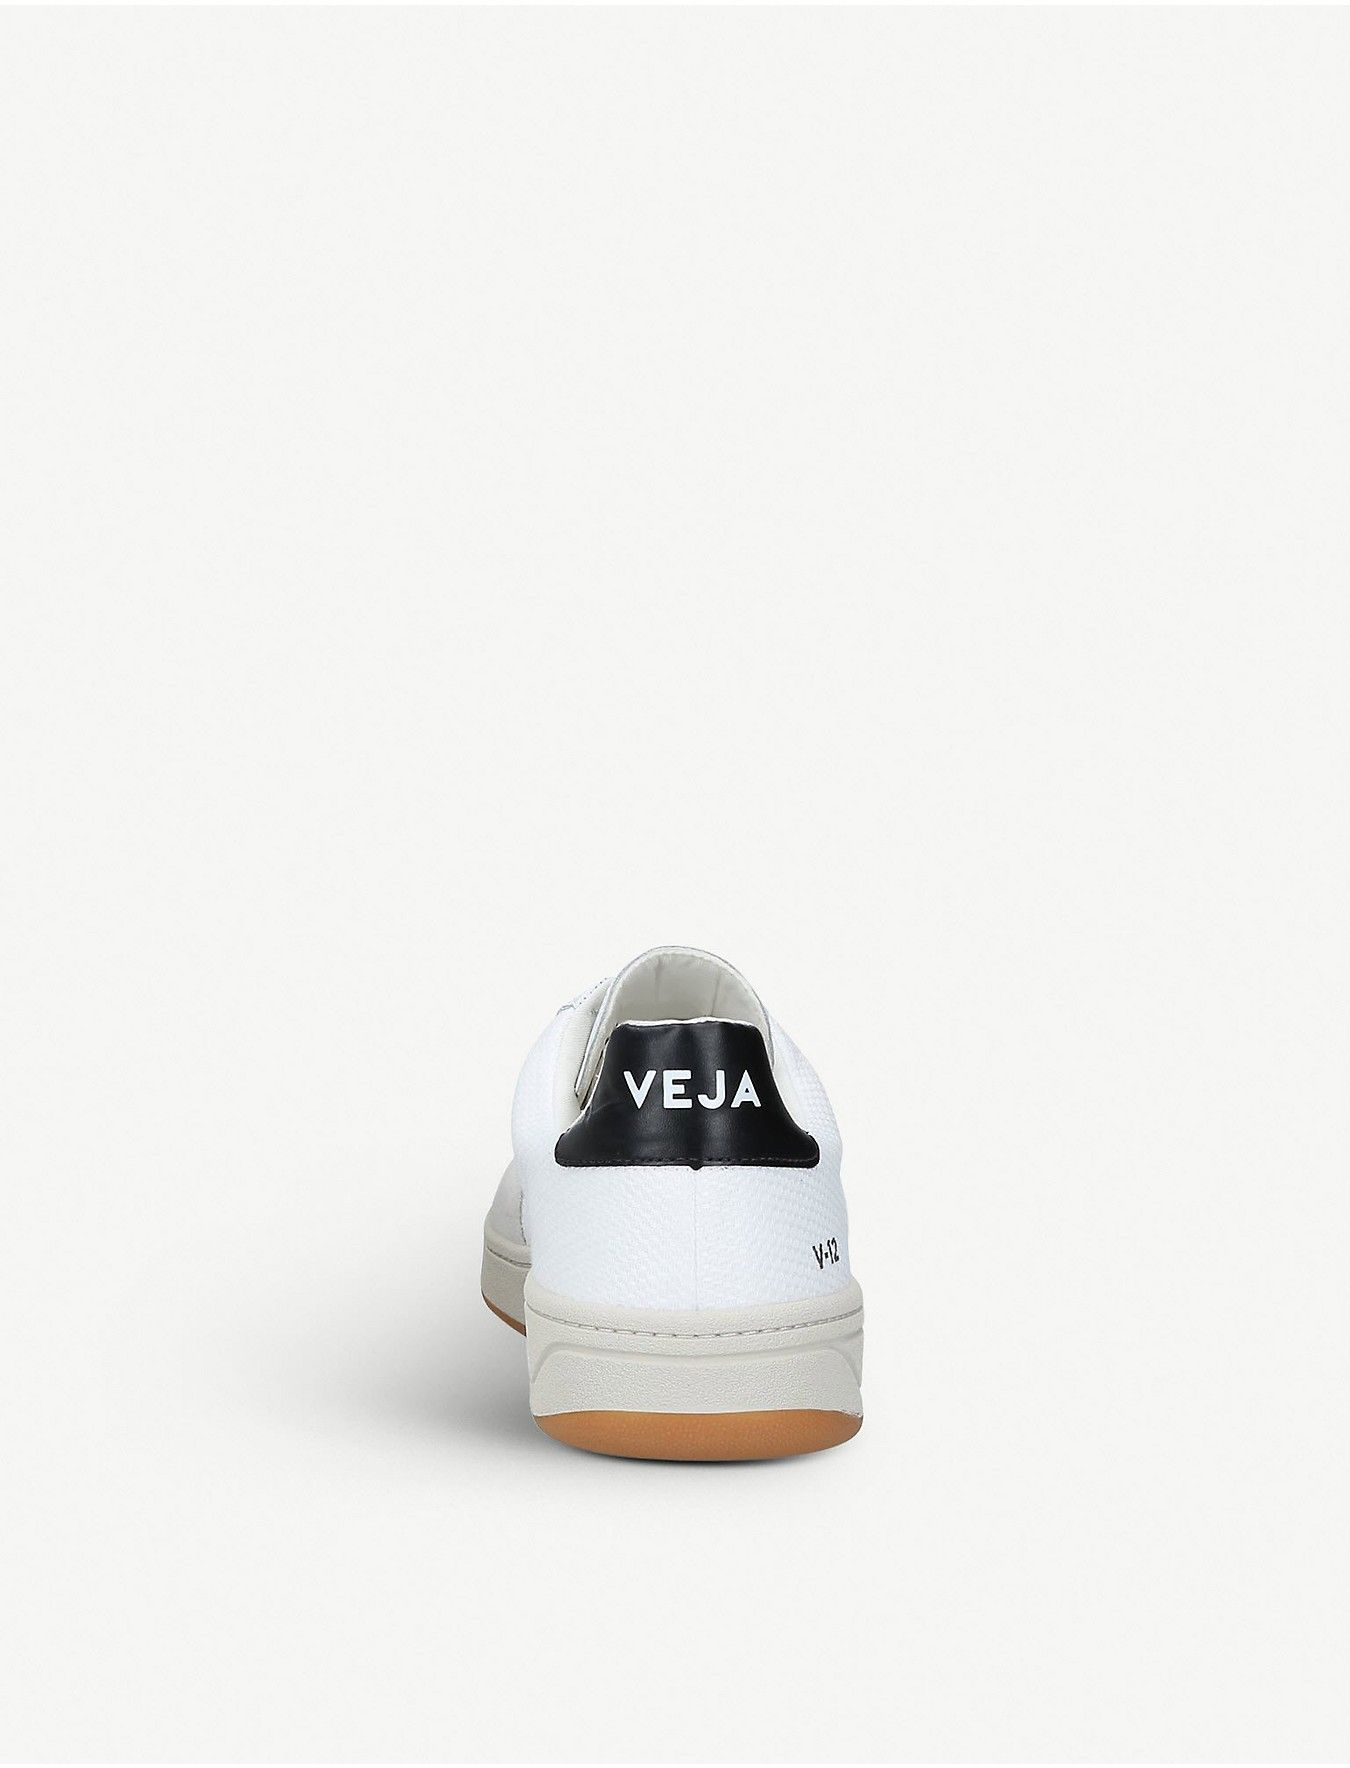 VEJA - V-12 B leather and mesh sneakers